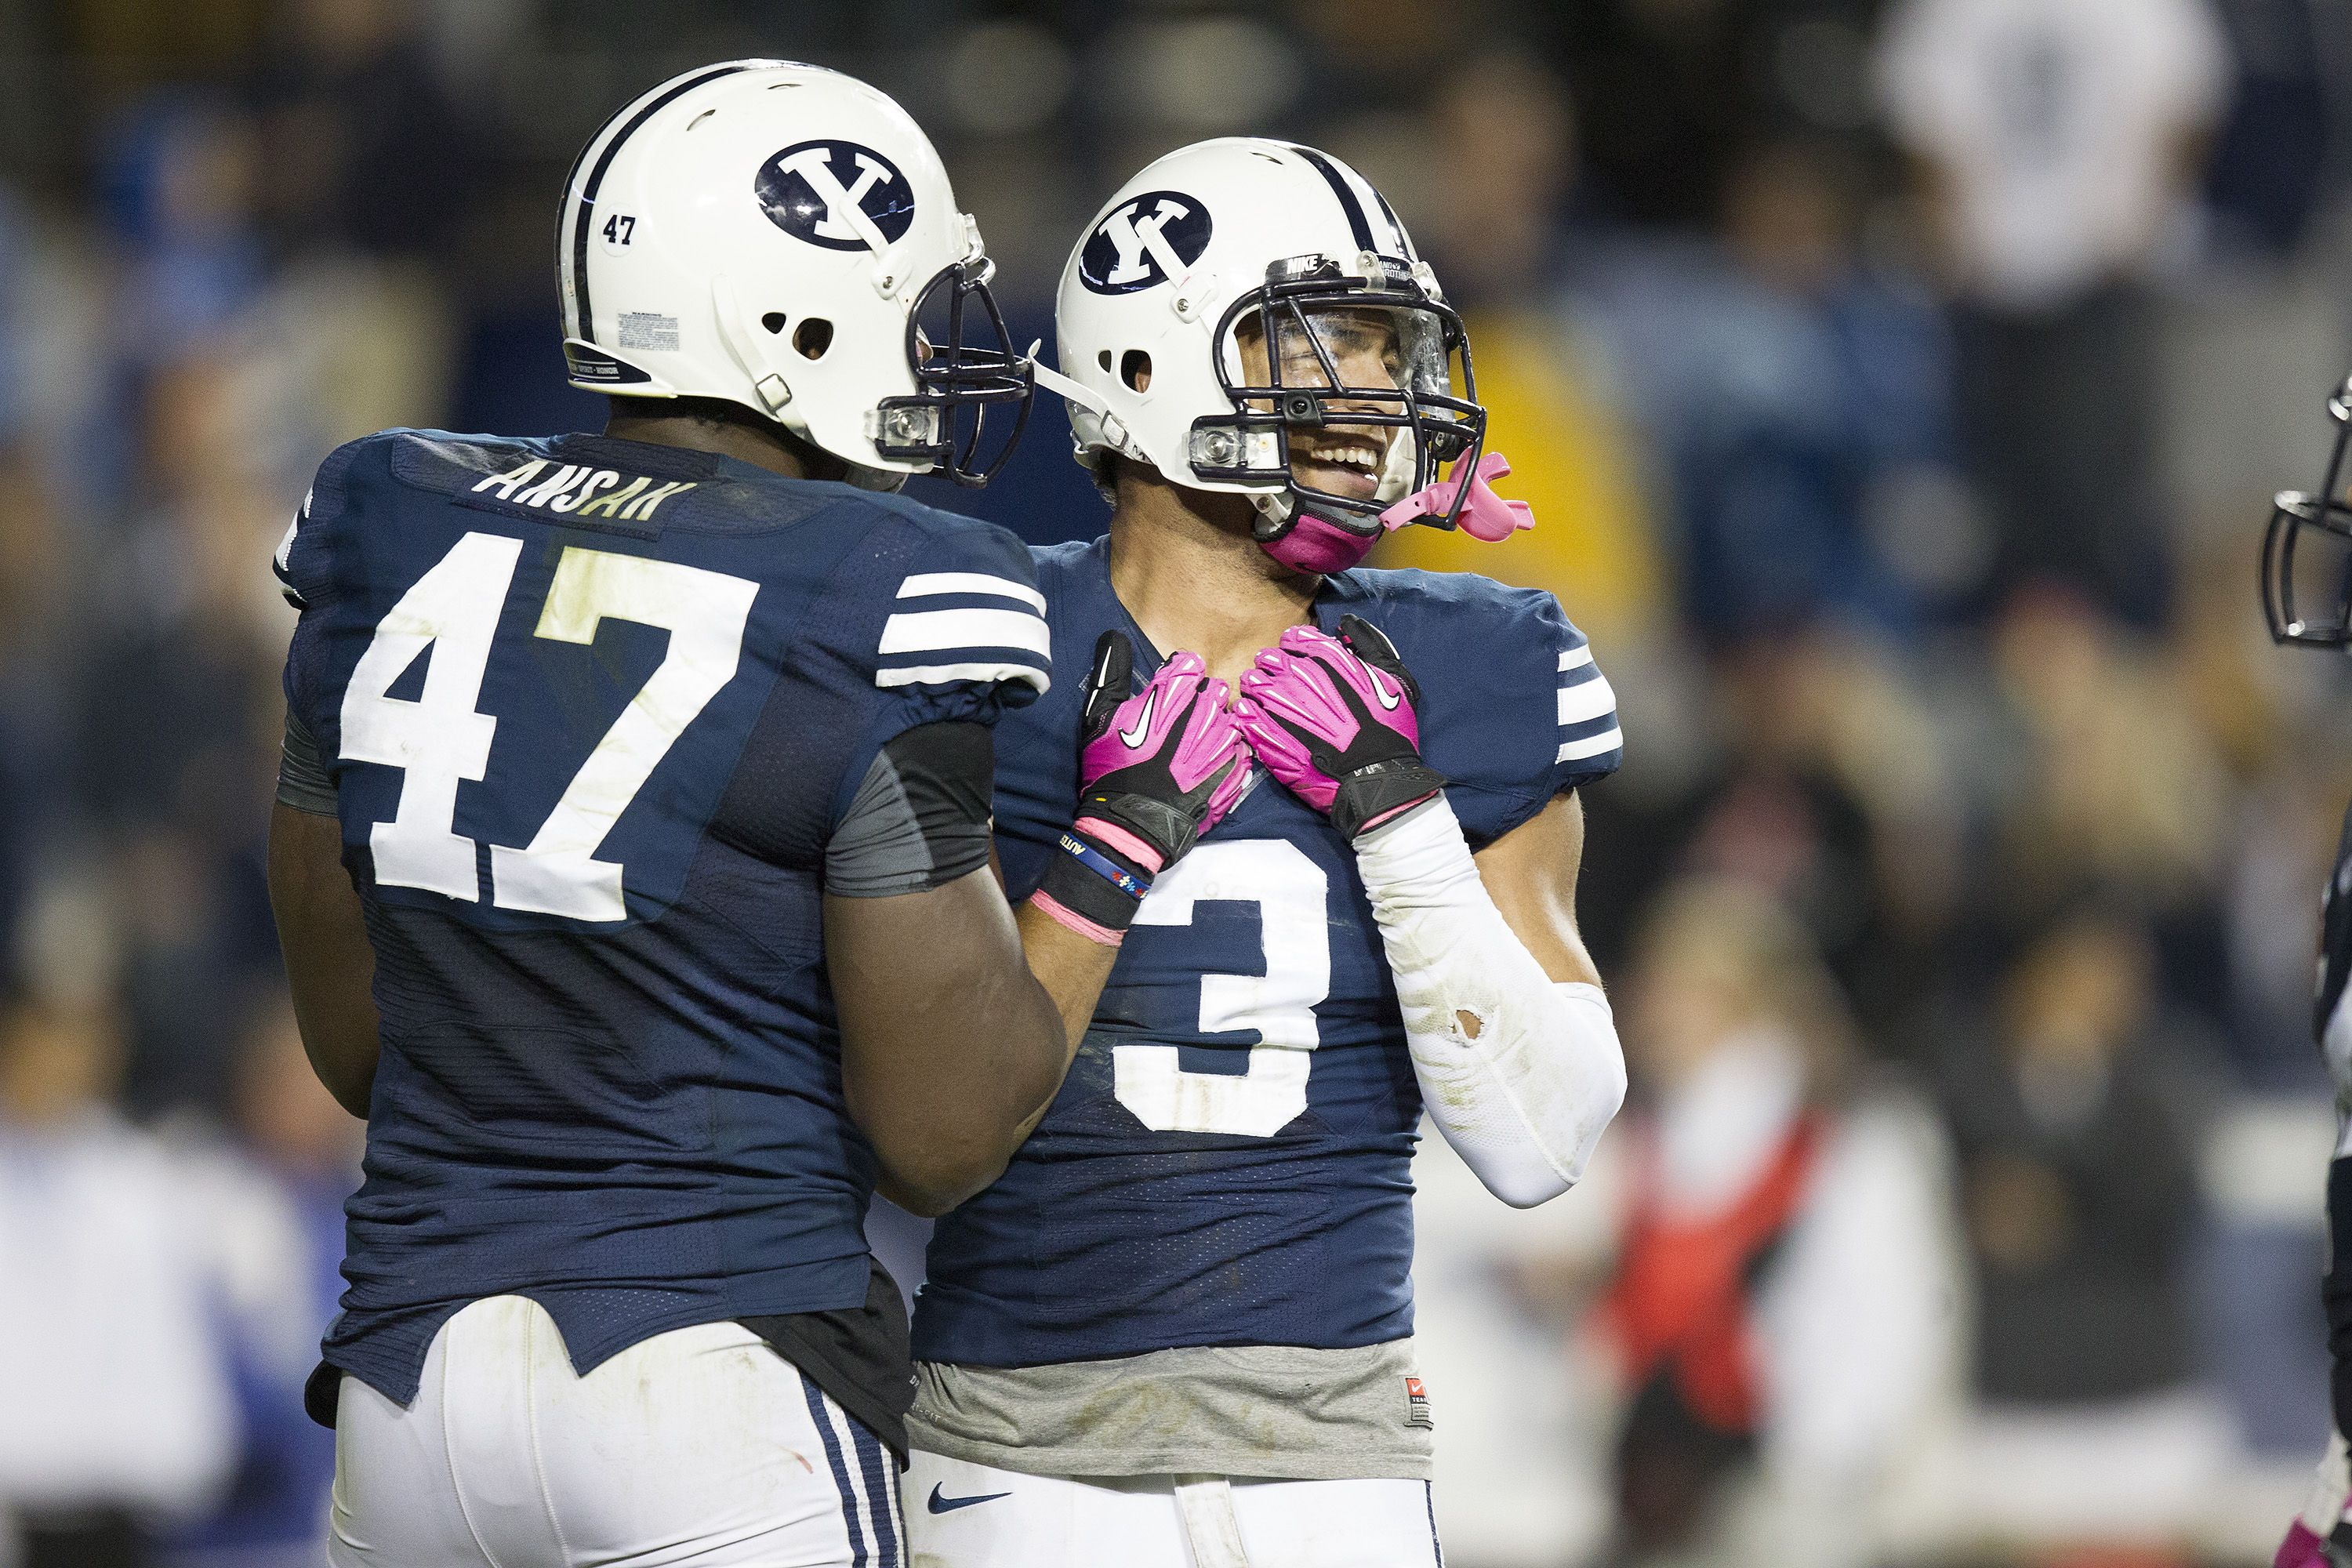 BYU football standouts Kyle Van Noy and Ziggy Ansah are good